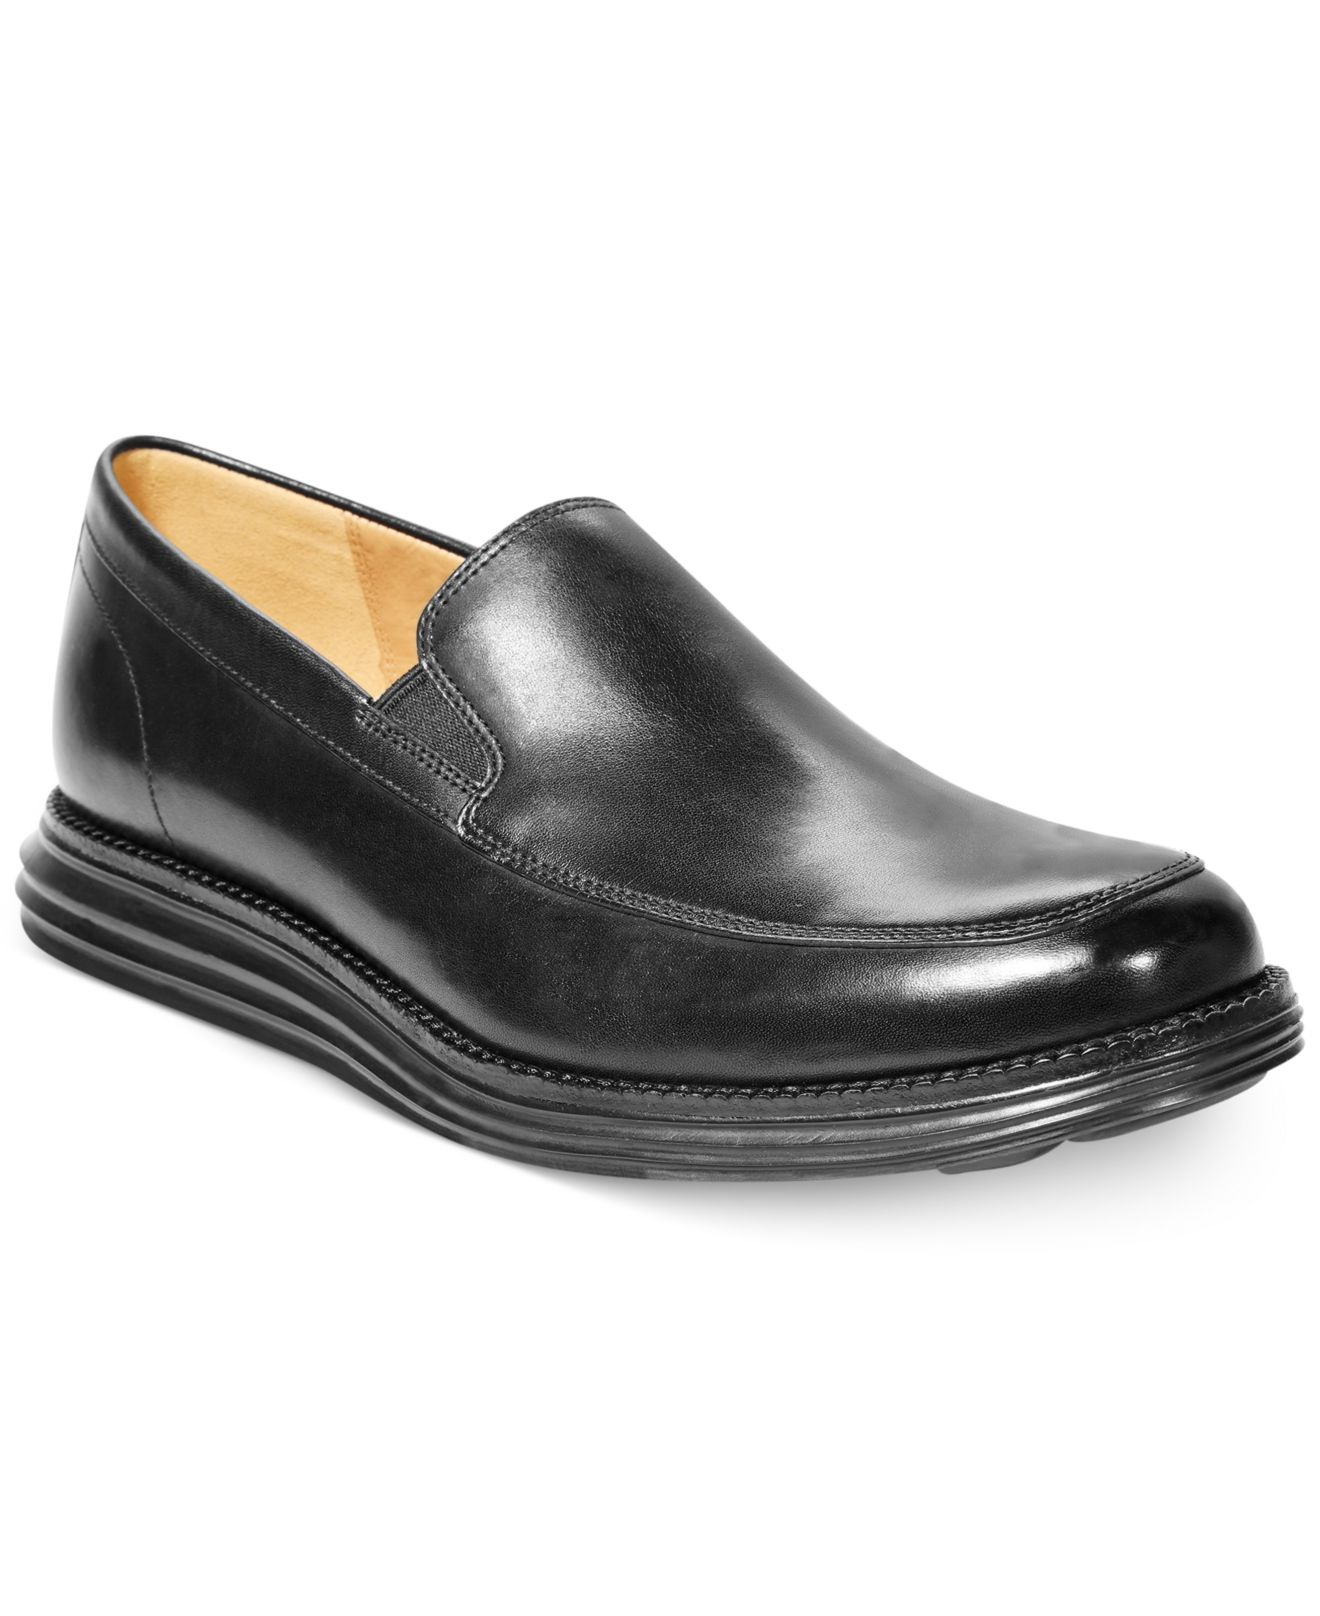 78570404f74 Gallery. Previously sold at  Macy s · Men s Cole Haan Drivers Men s Kiltie  Loafers ...